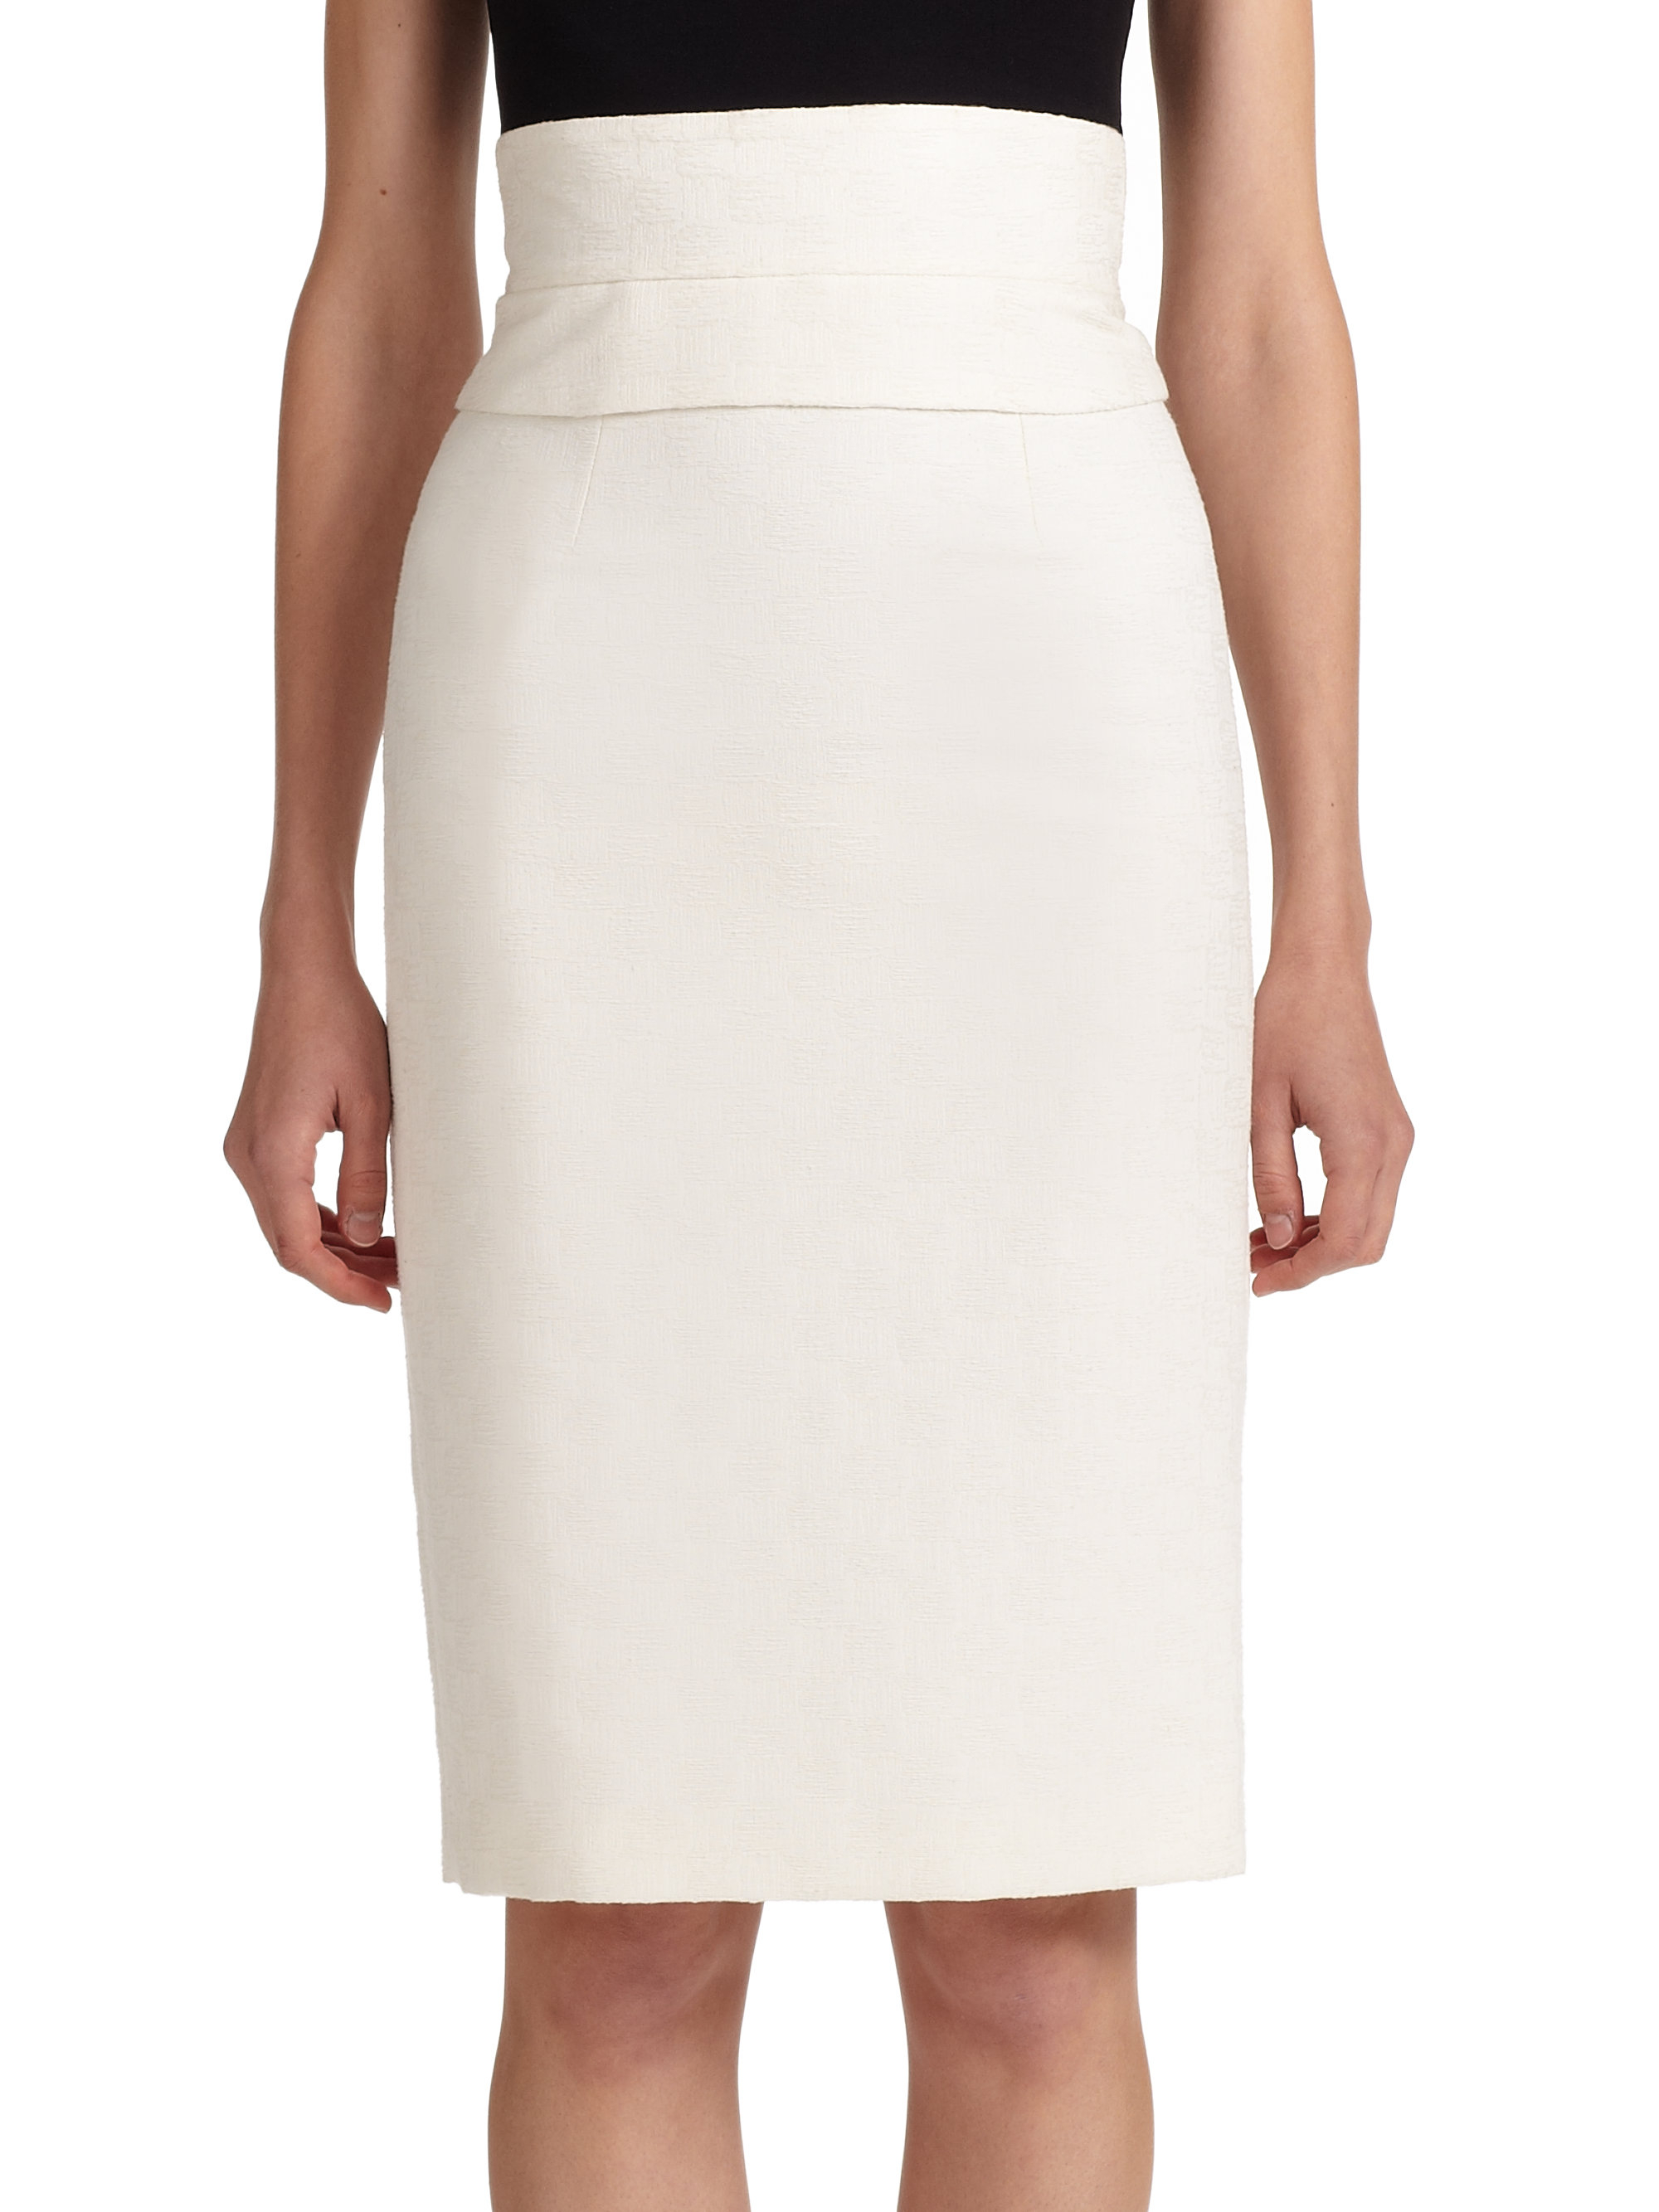 Carolina herrera High-waist Pencil Skirt in White | Lyst